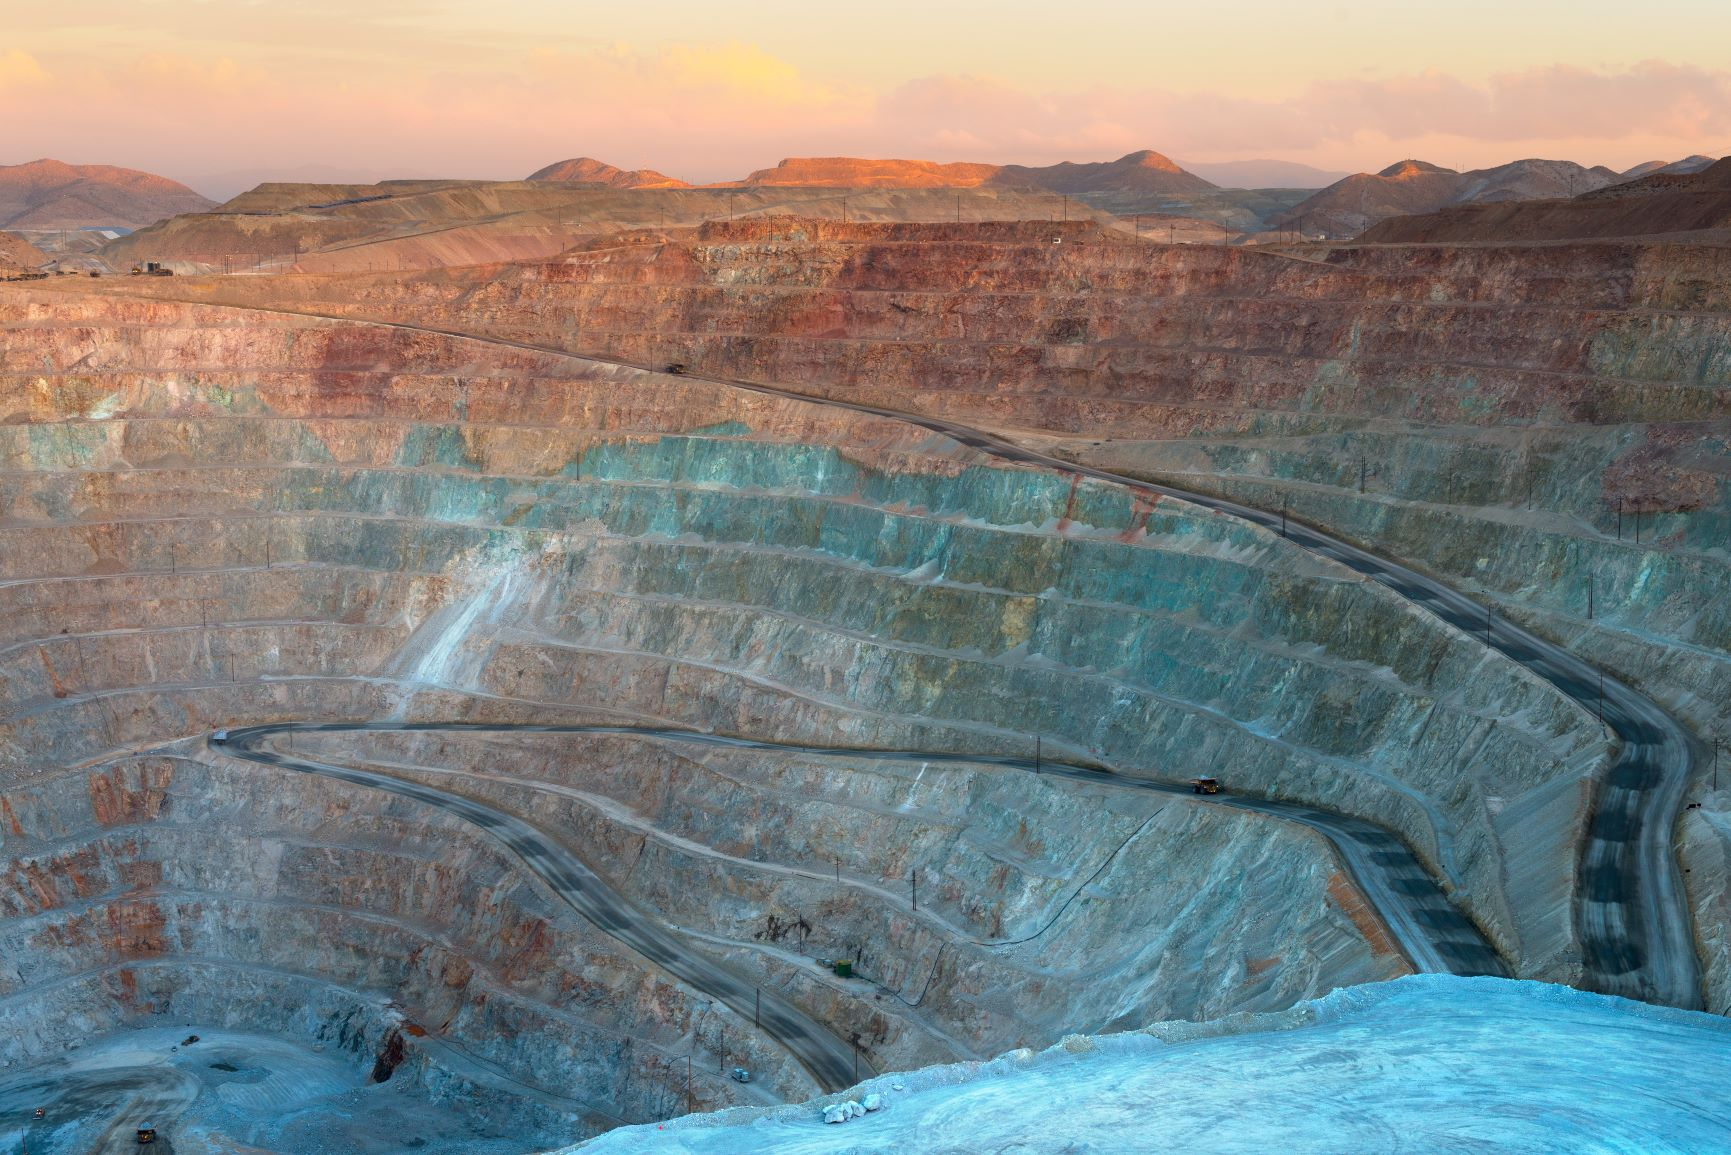 Peru unlikely to nationalise Copper, the key metal for renewables and EVs